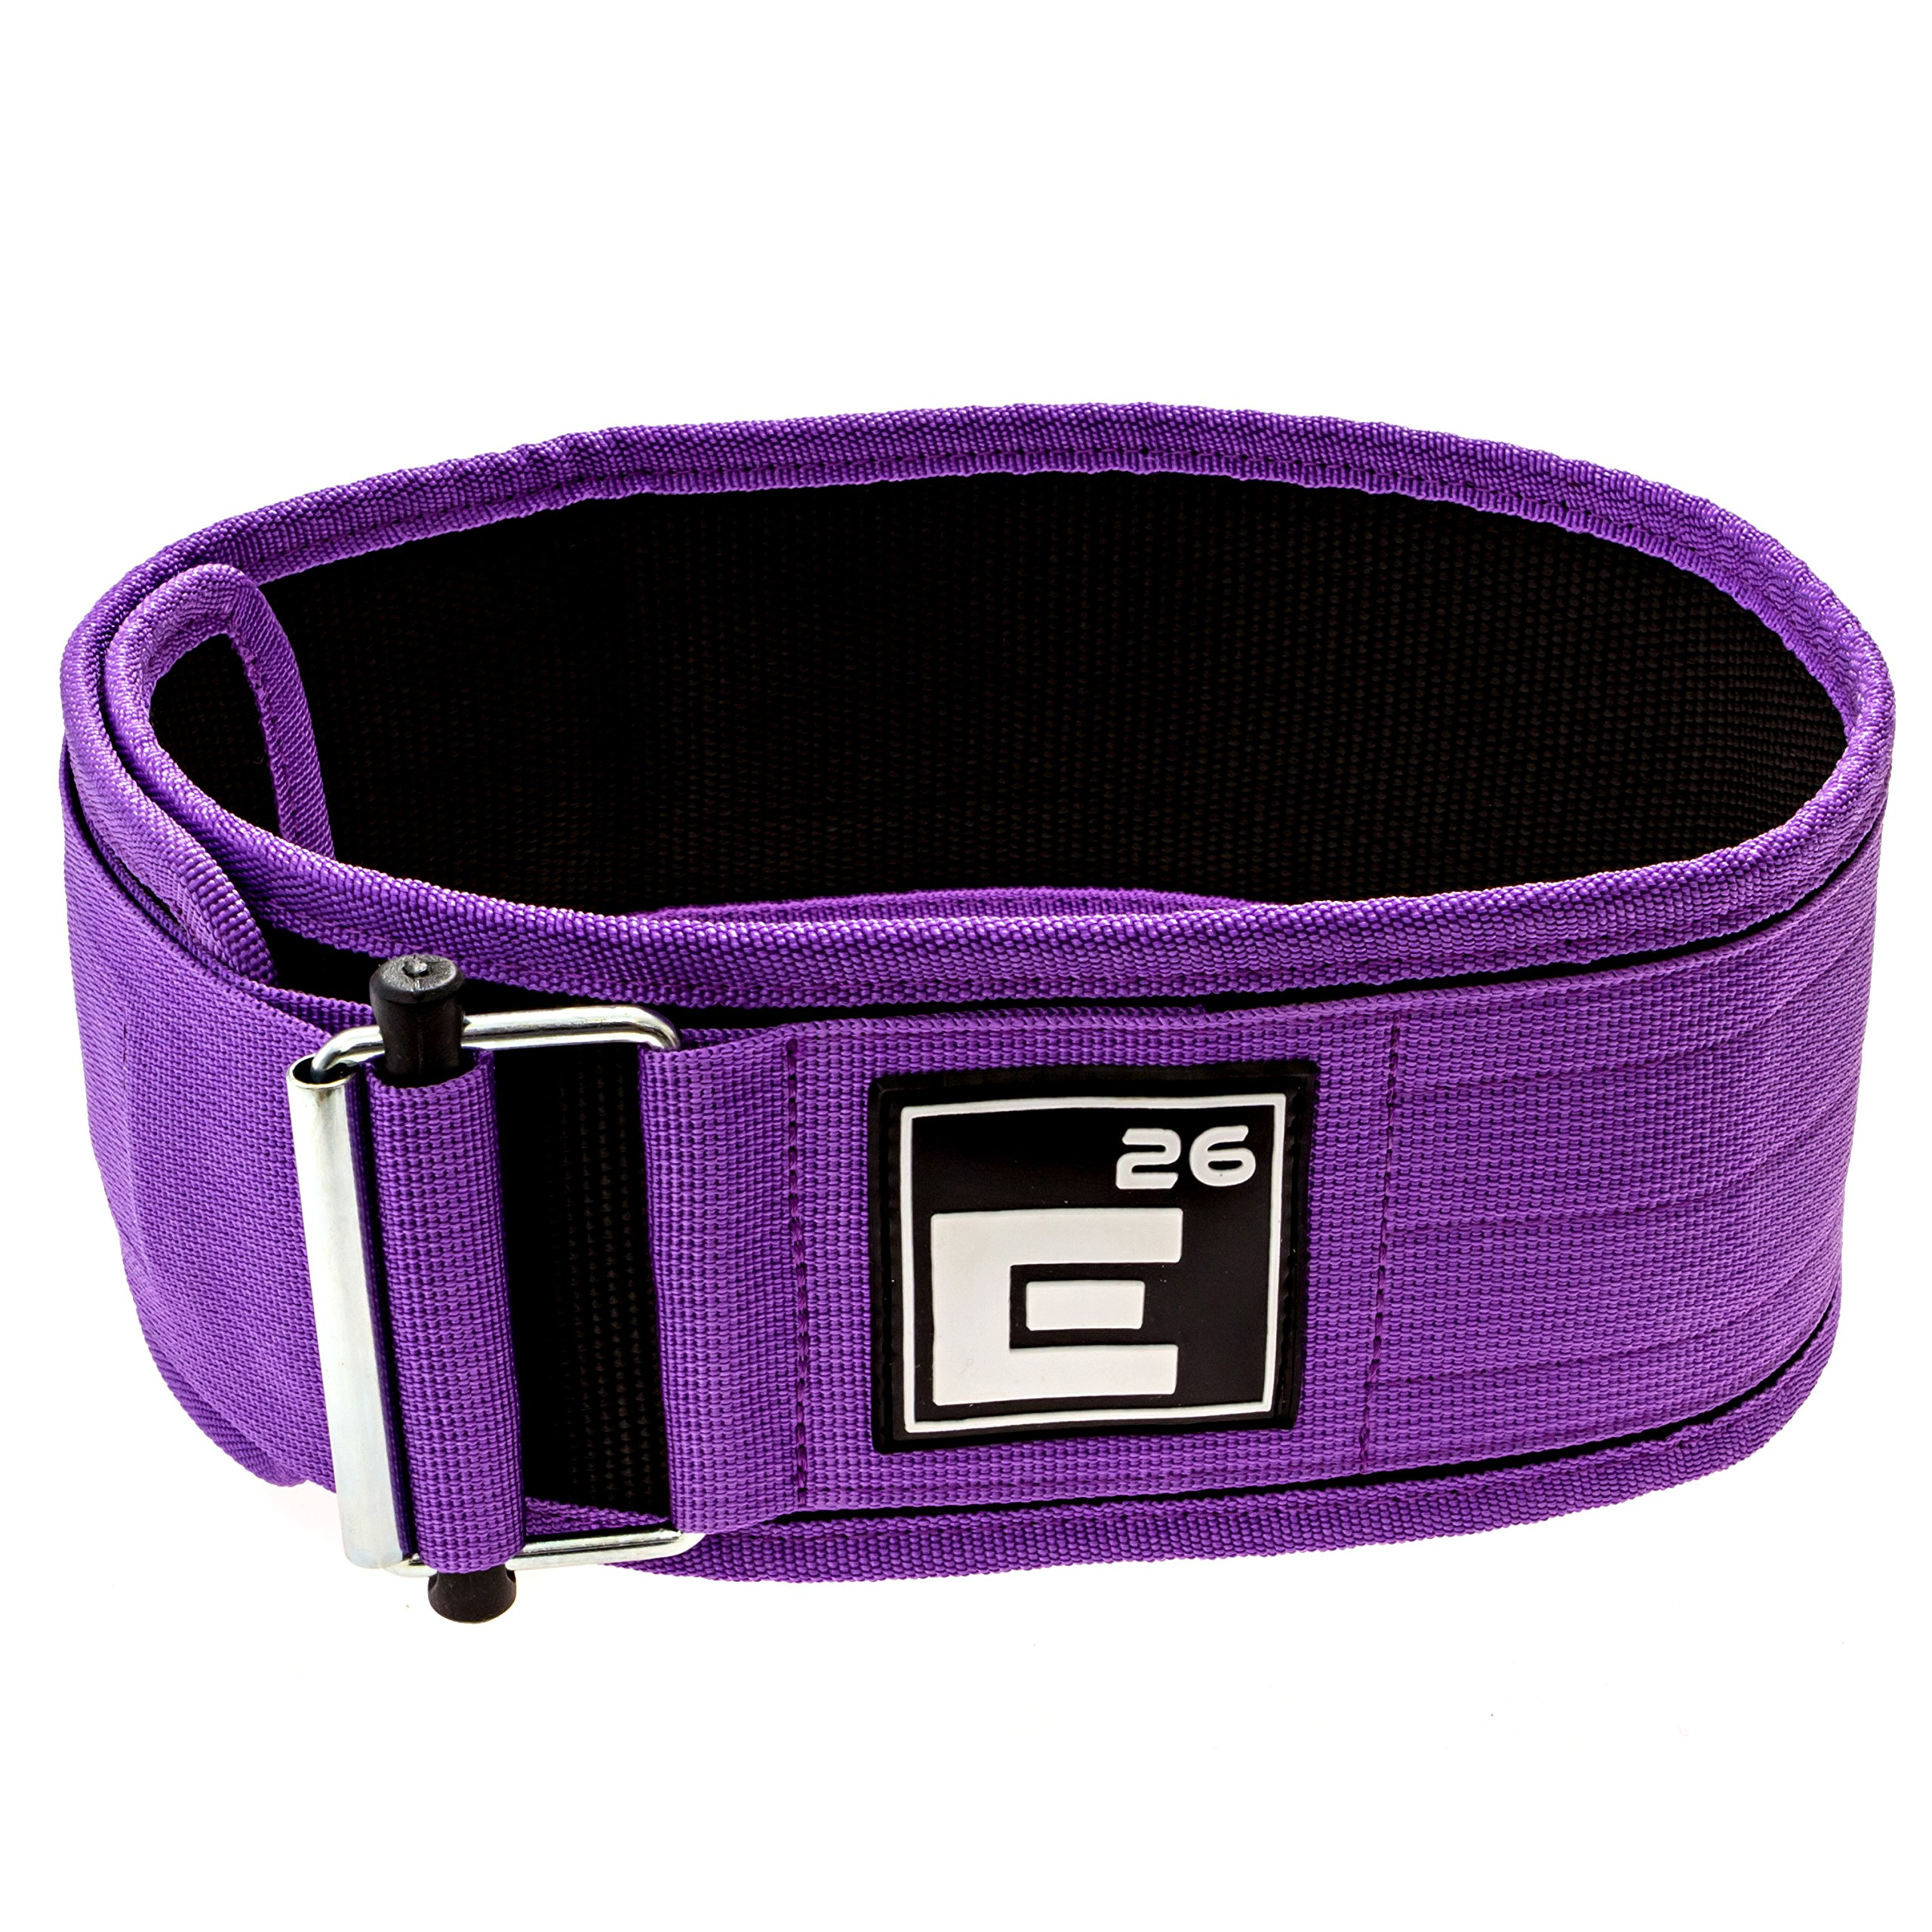 Element 26 Self-Locking Weight Lifting Belt | Premium Weightlifting Belt for Serious Crossfit, Weight Lifting, and Olympic Lifting Athletes | (Medium, Purple)